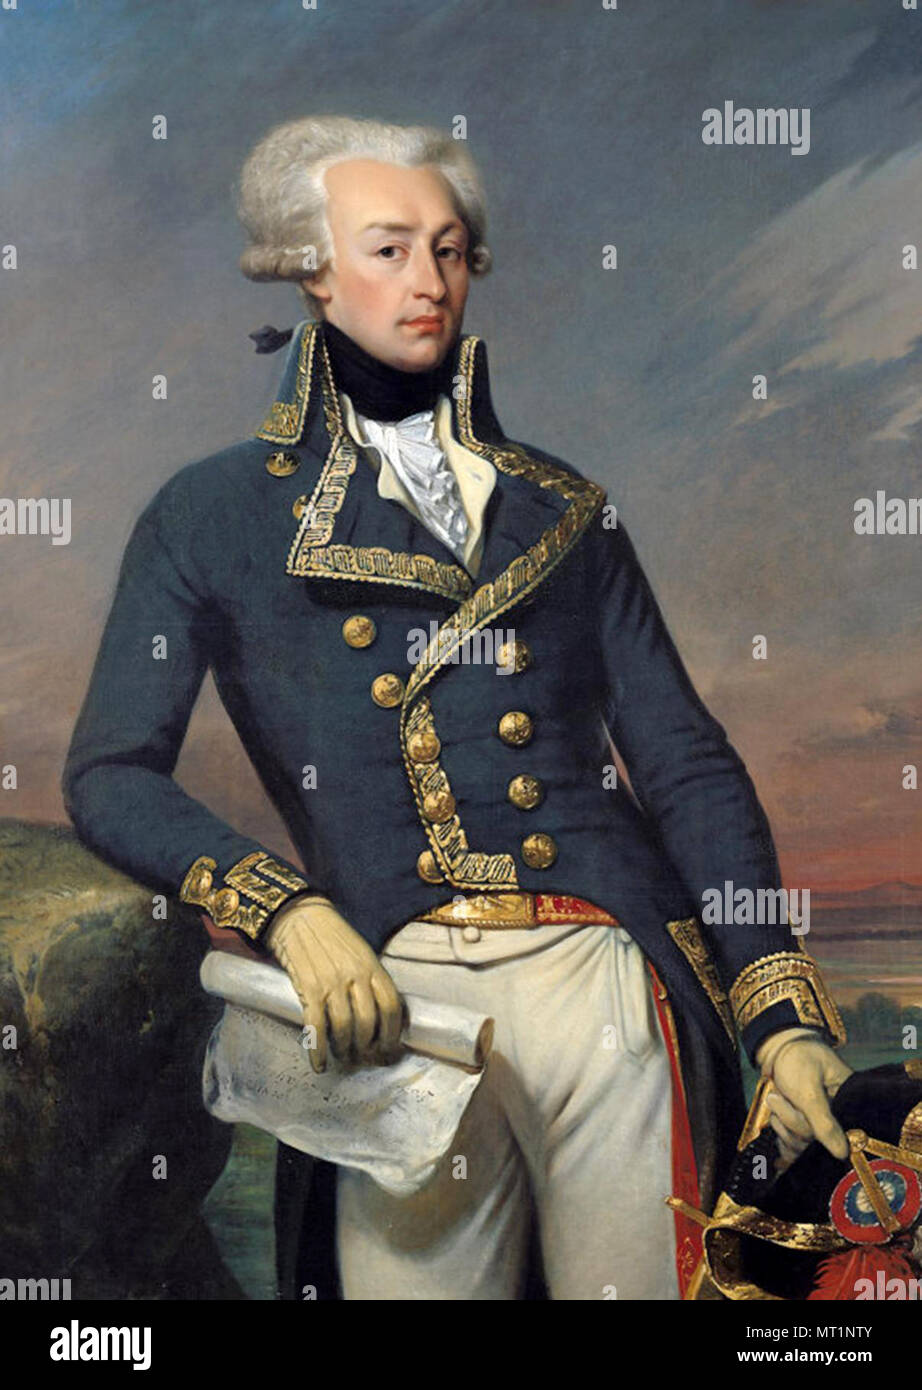 Gilbert du Motier Marquis de Lafayette, Marie-Joseph Paul Yves Roch Gilbert du Motier, Marquis de Lafayette (1757 – 1834), French aristocrat and military officer - Stock Image